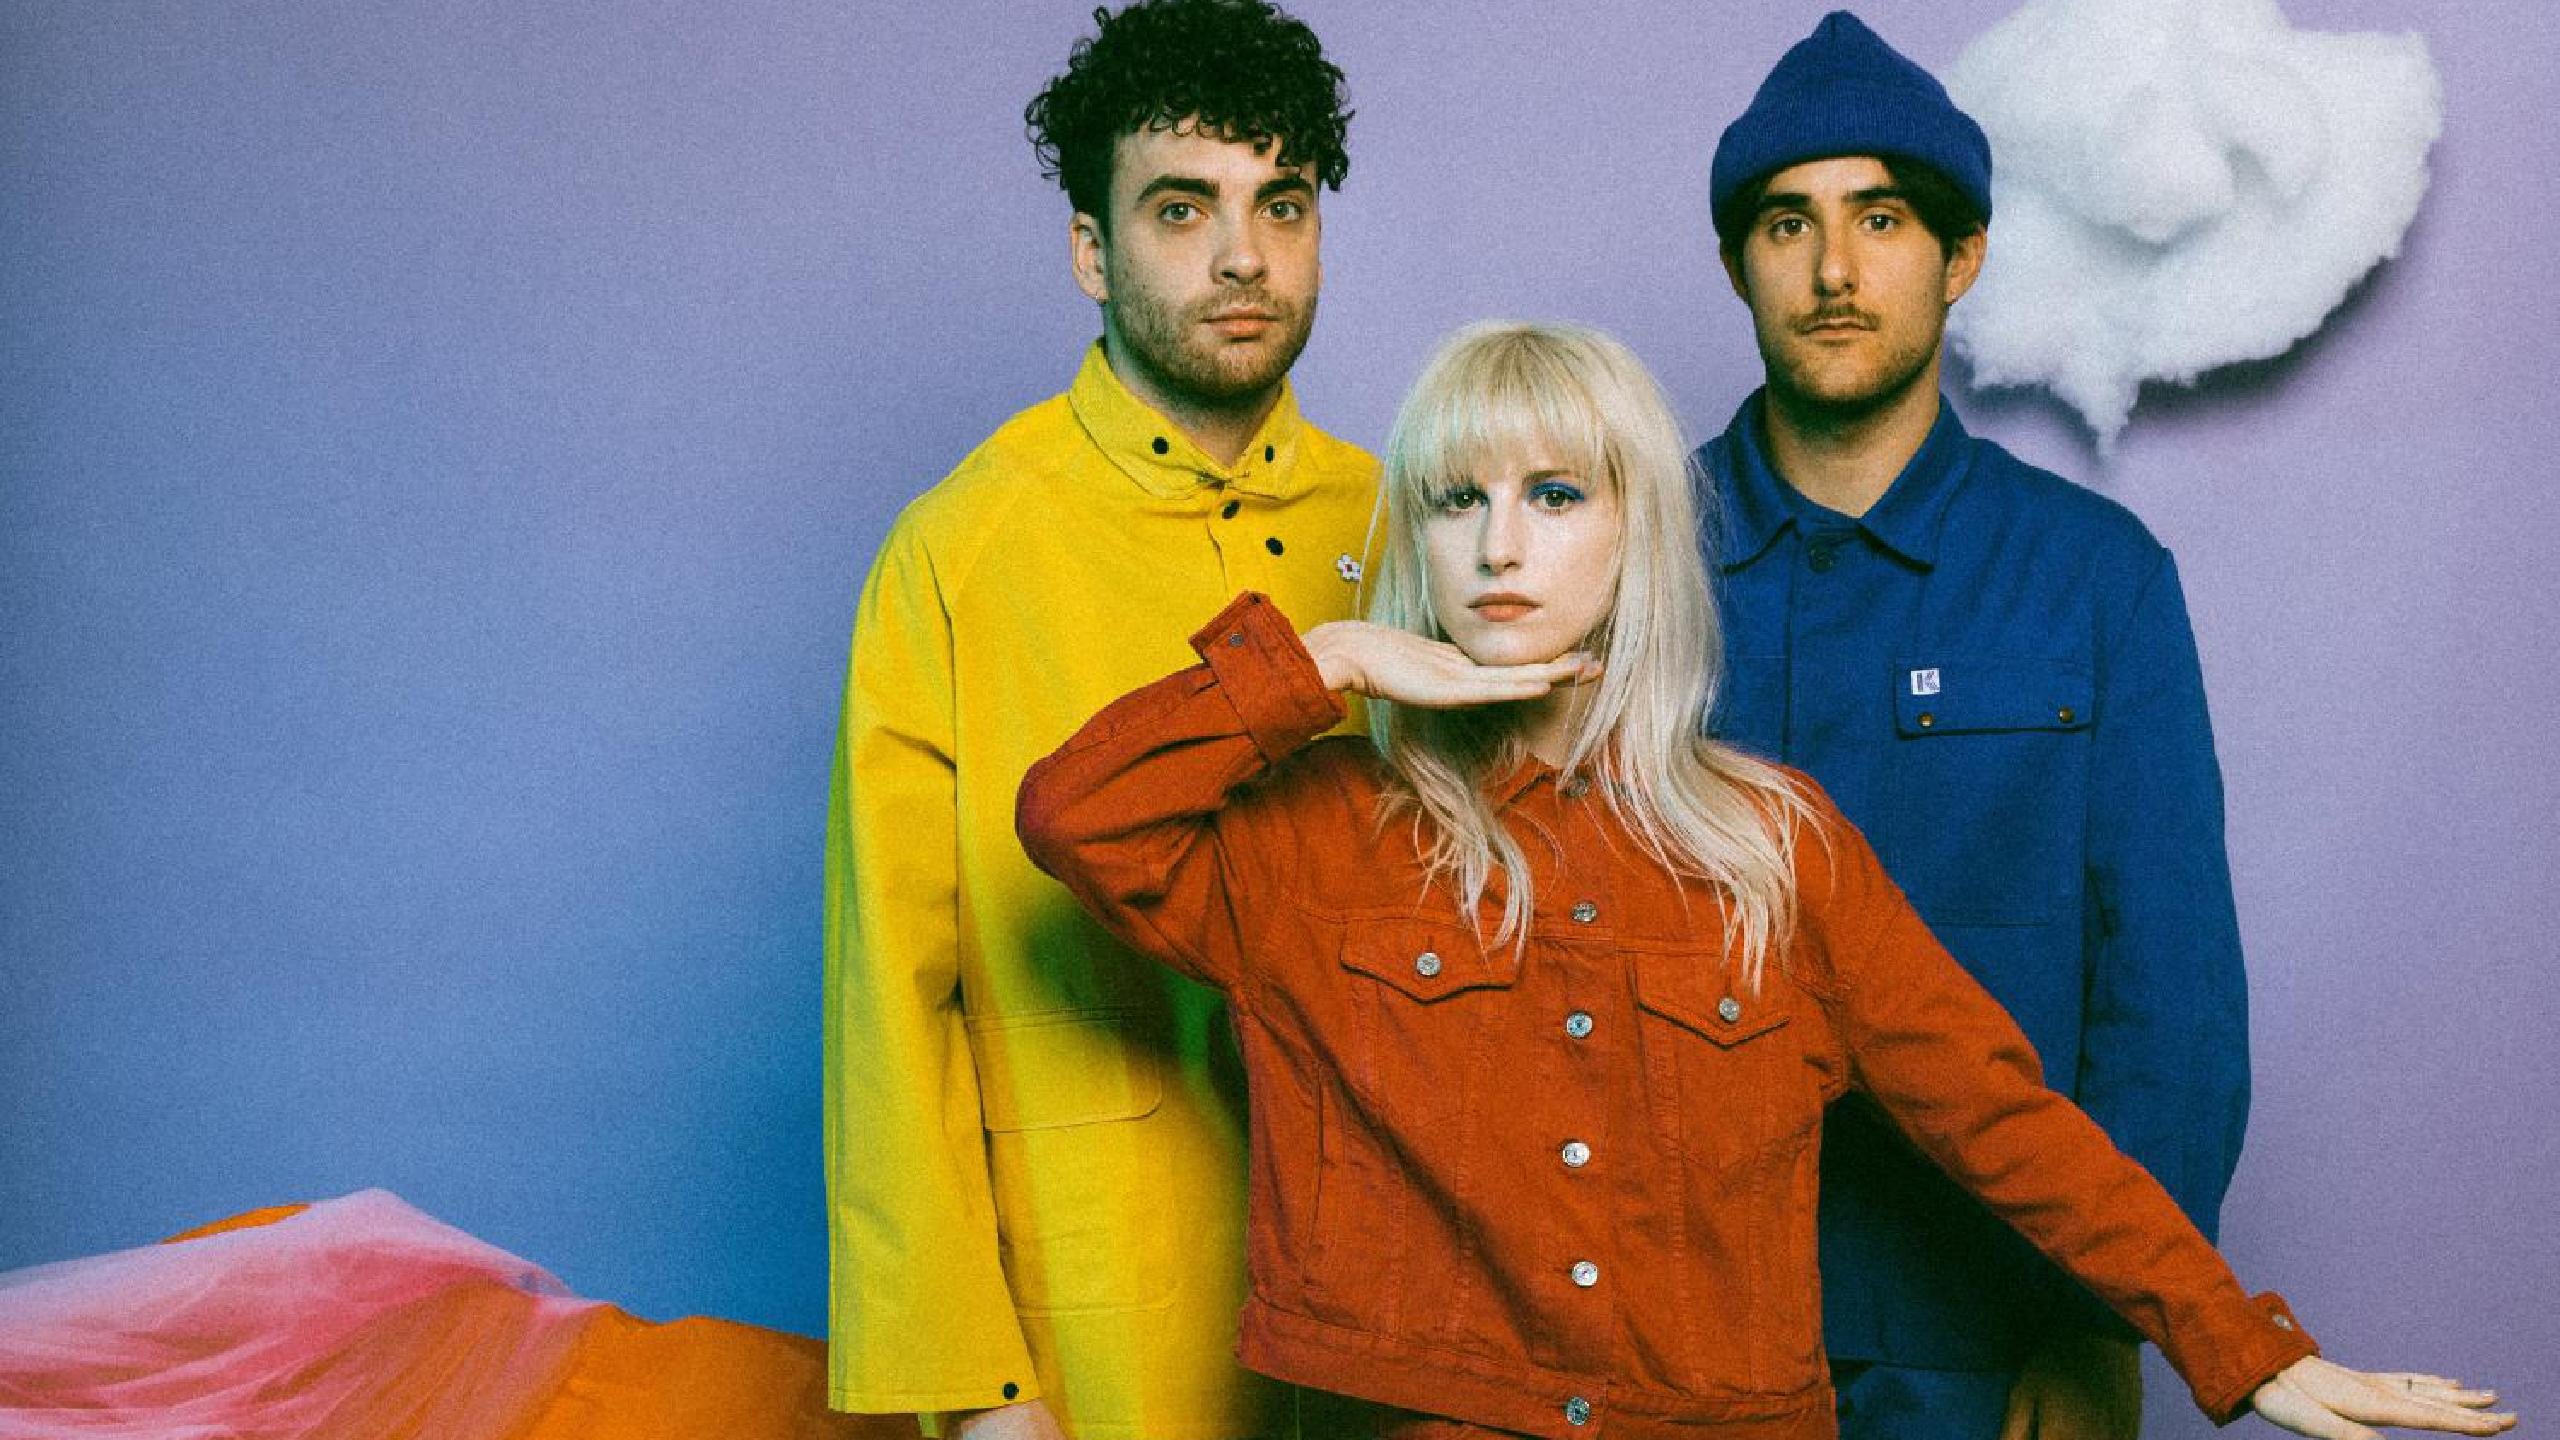 Paramore Tour 2020 Dates Paramore tour dates 2019 2020. Paramore tickets and concerts